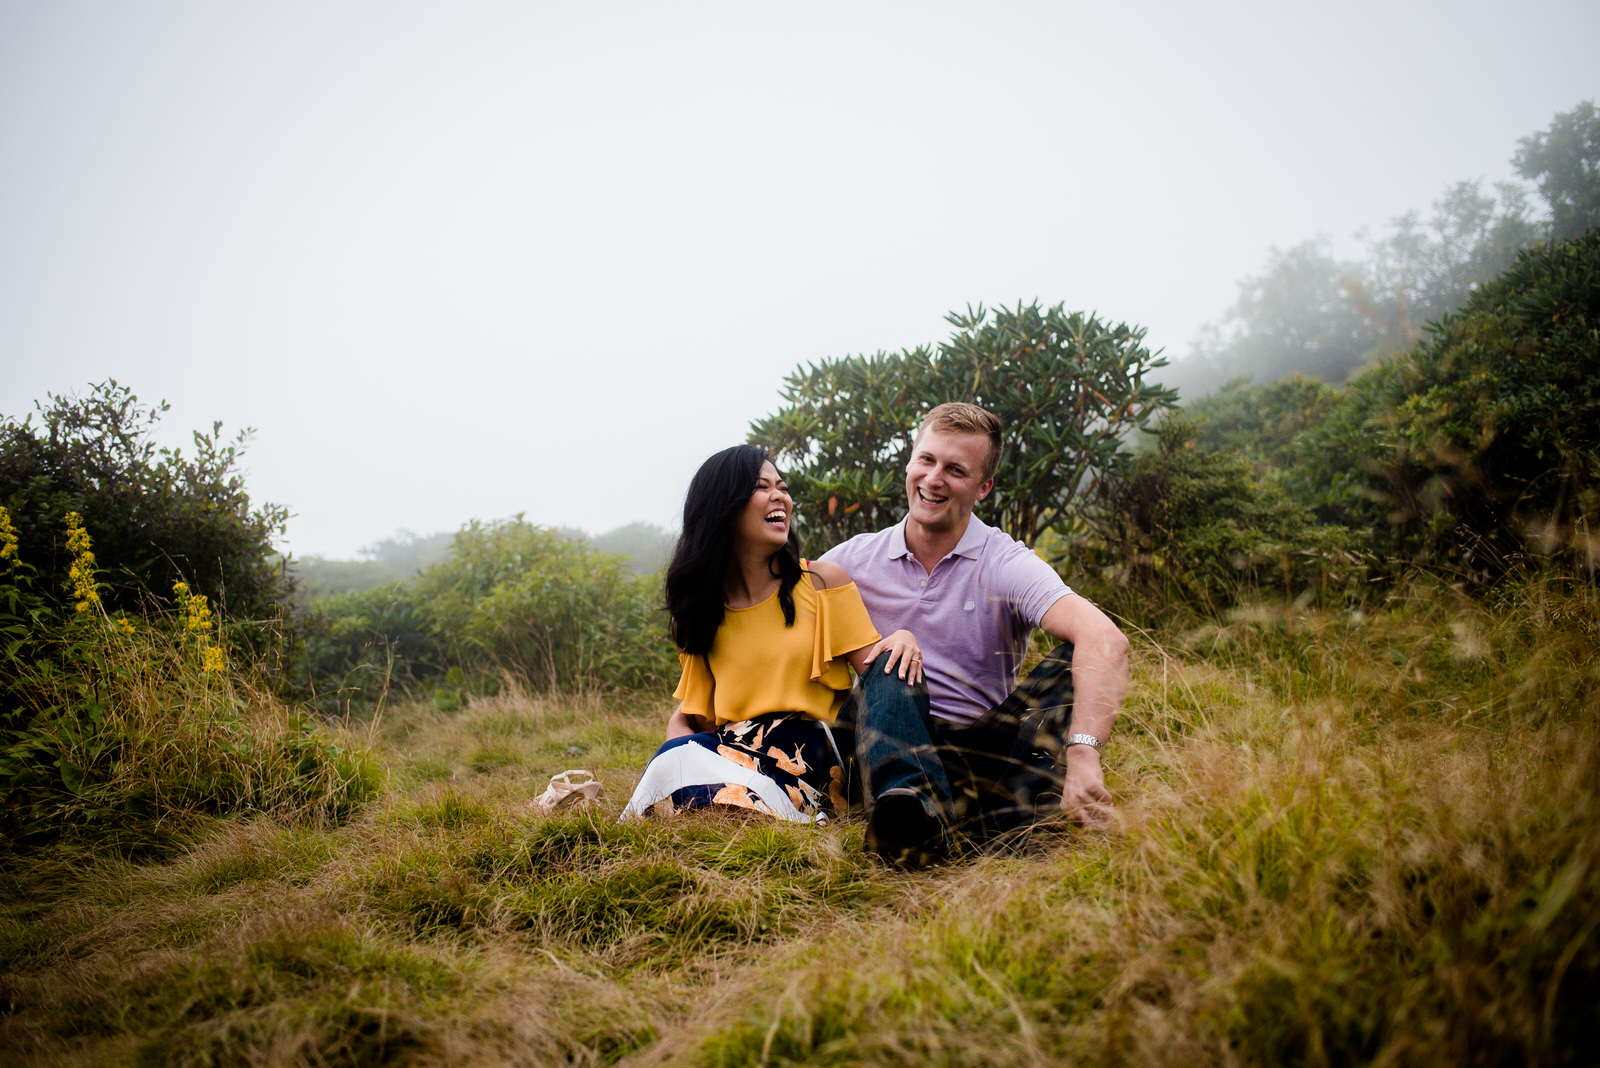 Craggy-Gardens-Engagement-Session-75.jpg